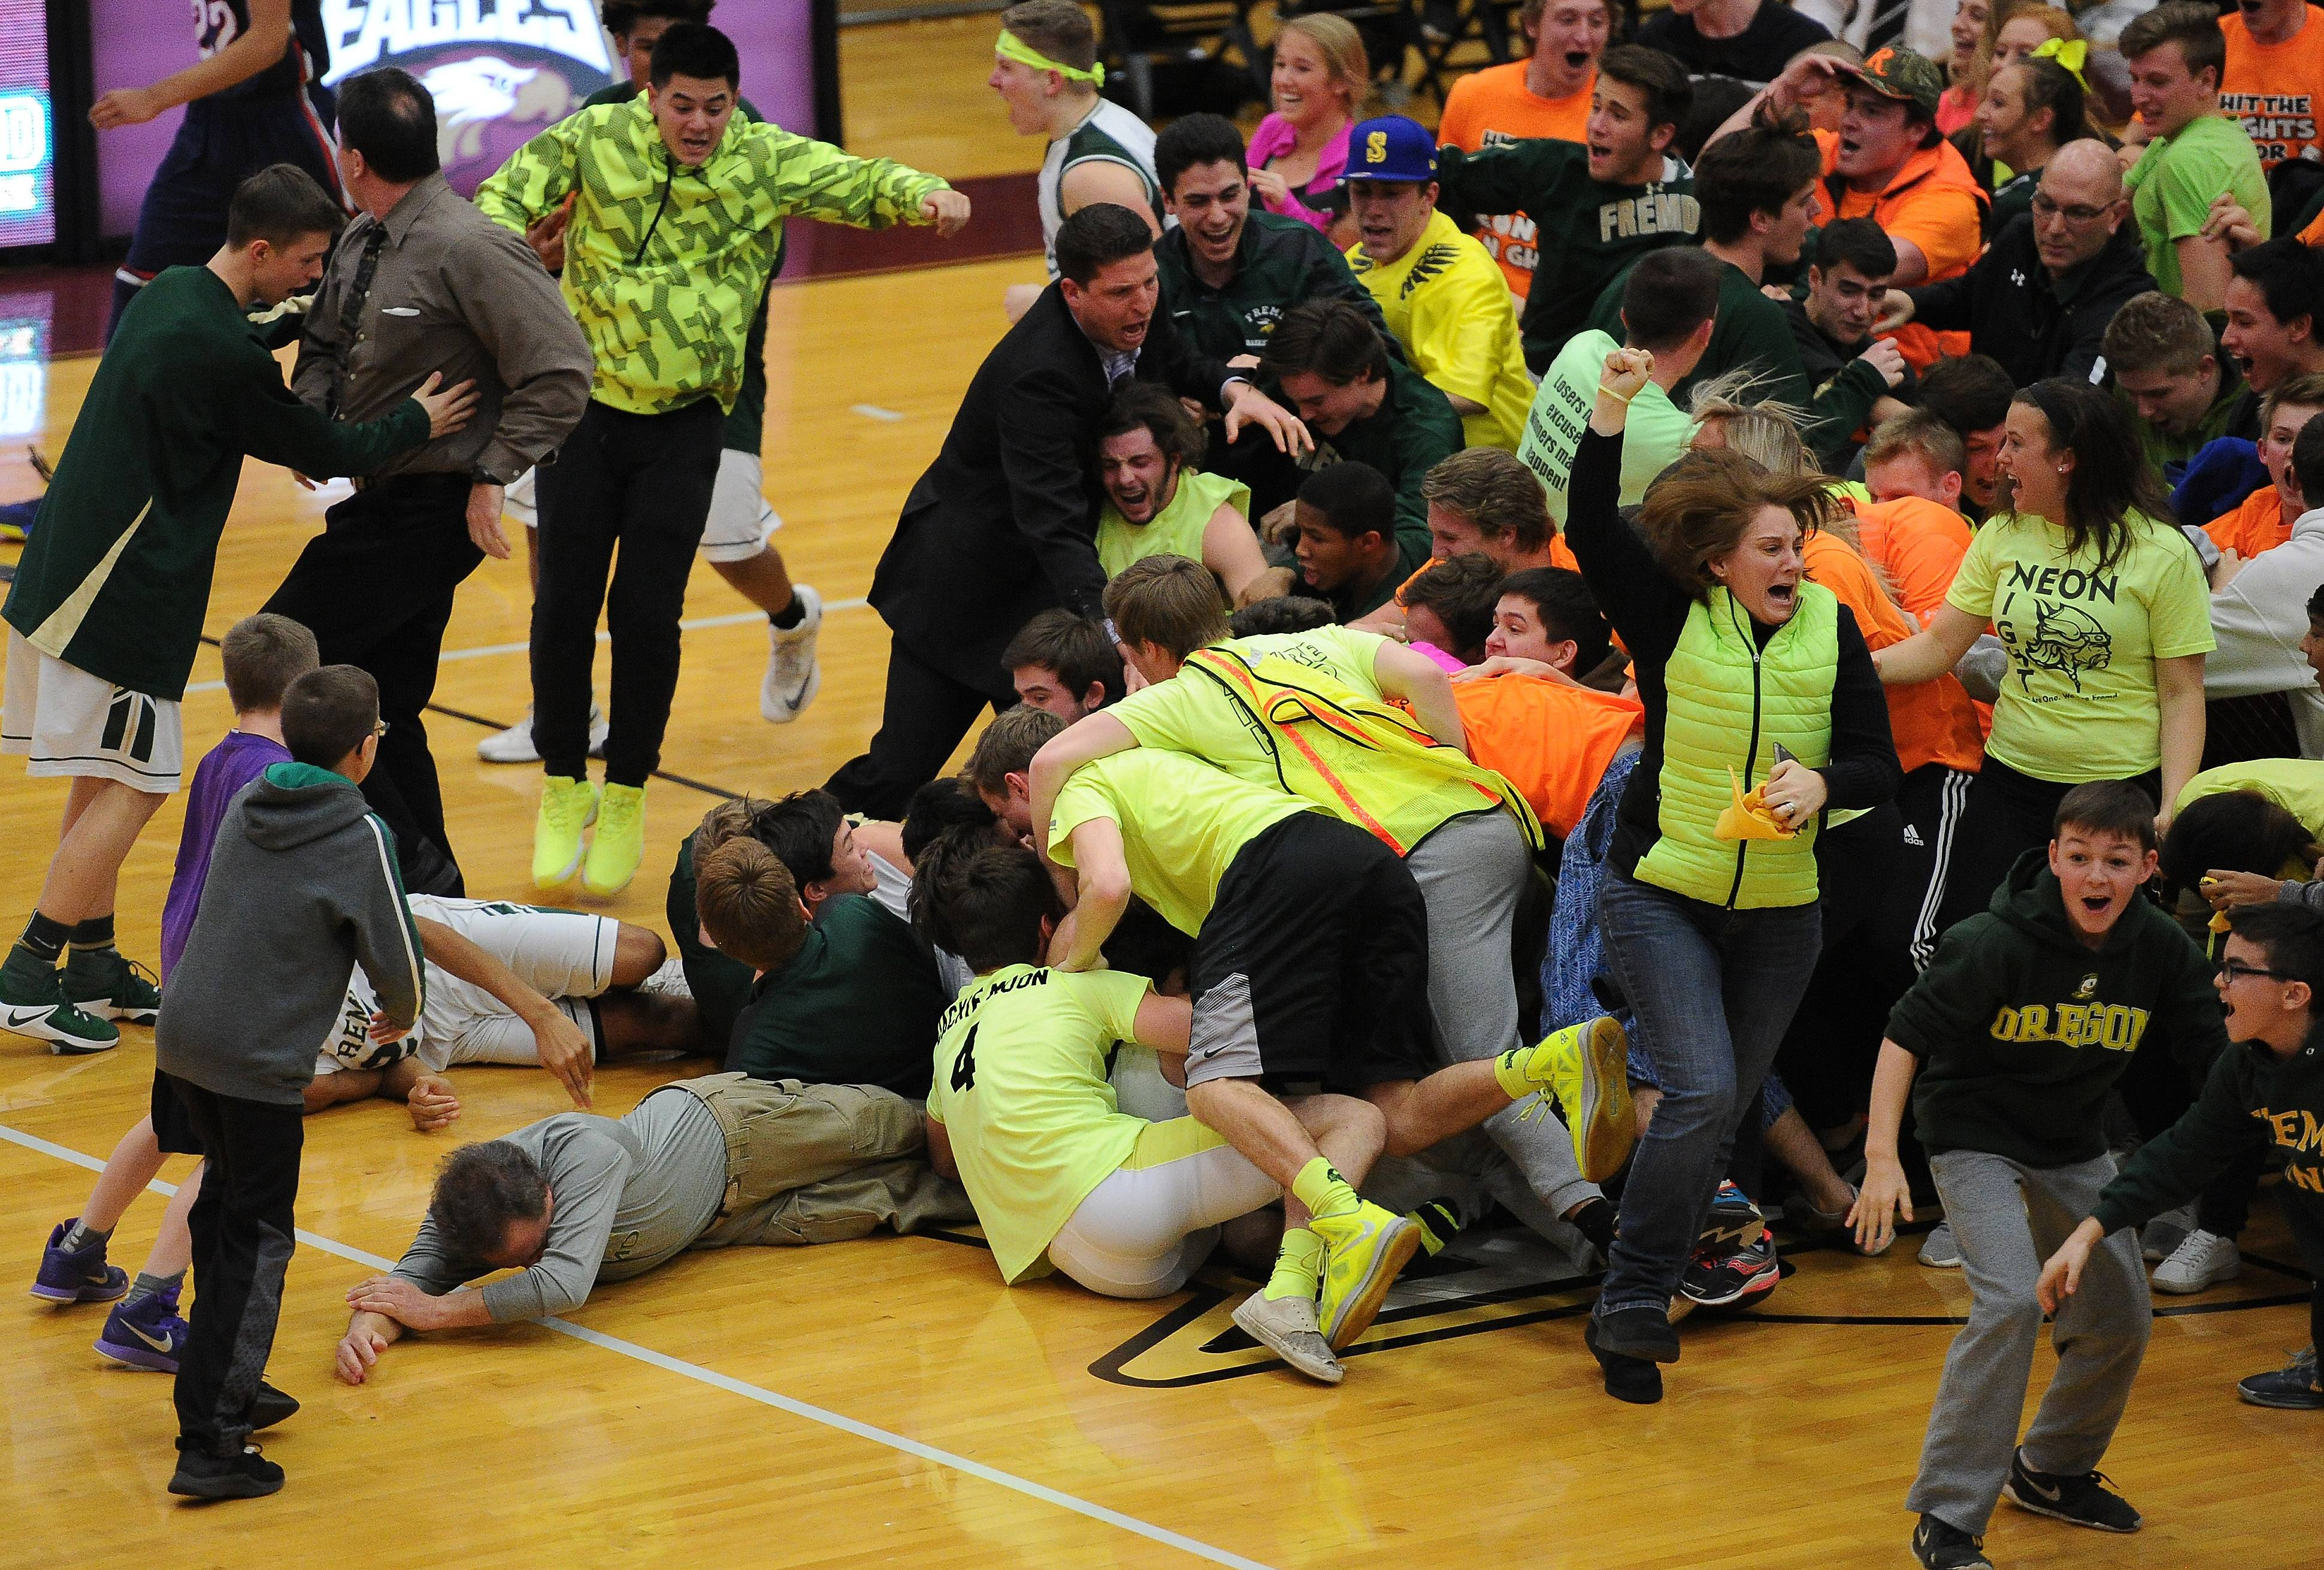 It's bedlam on the court at Robert Morris University following a buzzer-beating 3 from Fremd's Kyle Sliwa in a 43-42 victory over Conant in Class 4A sectional championshp play Friday.